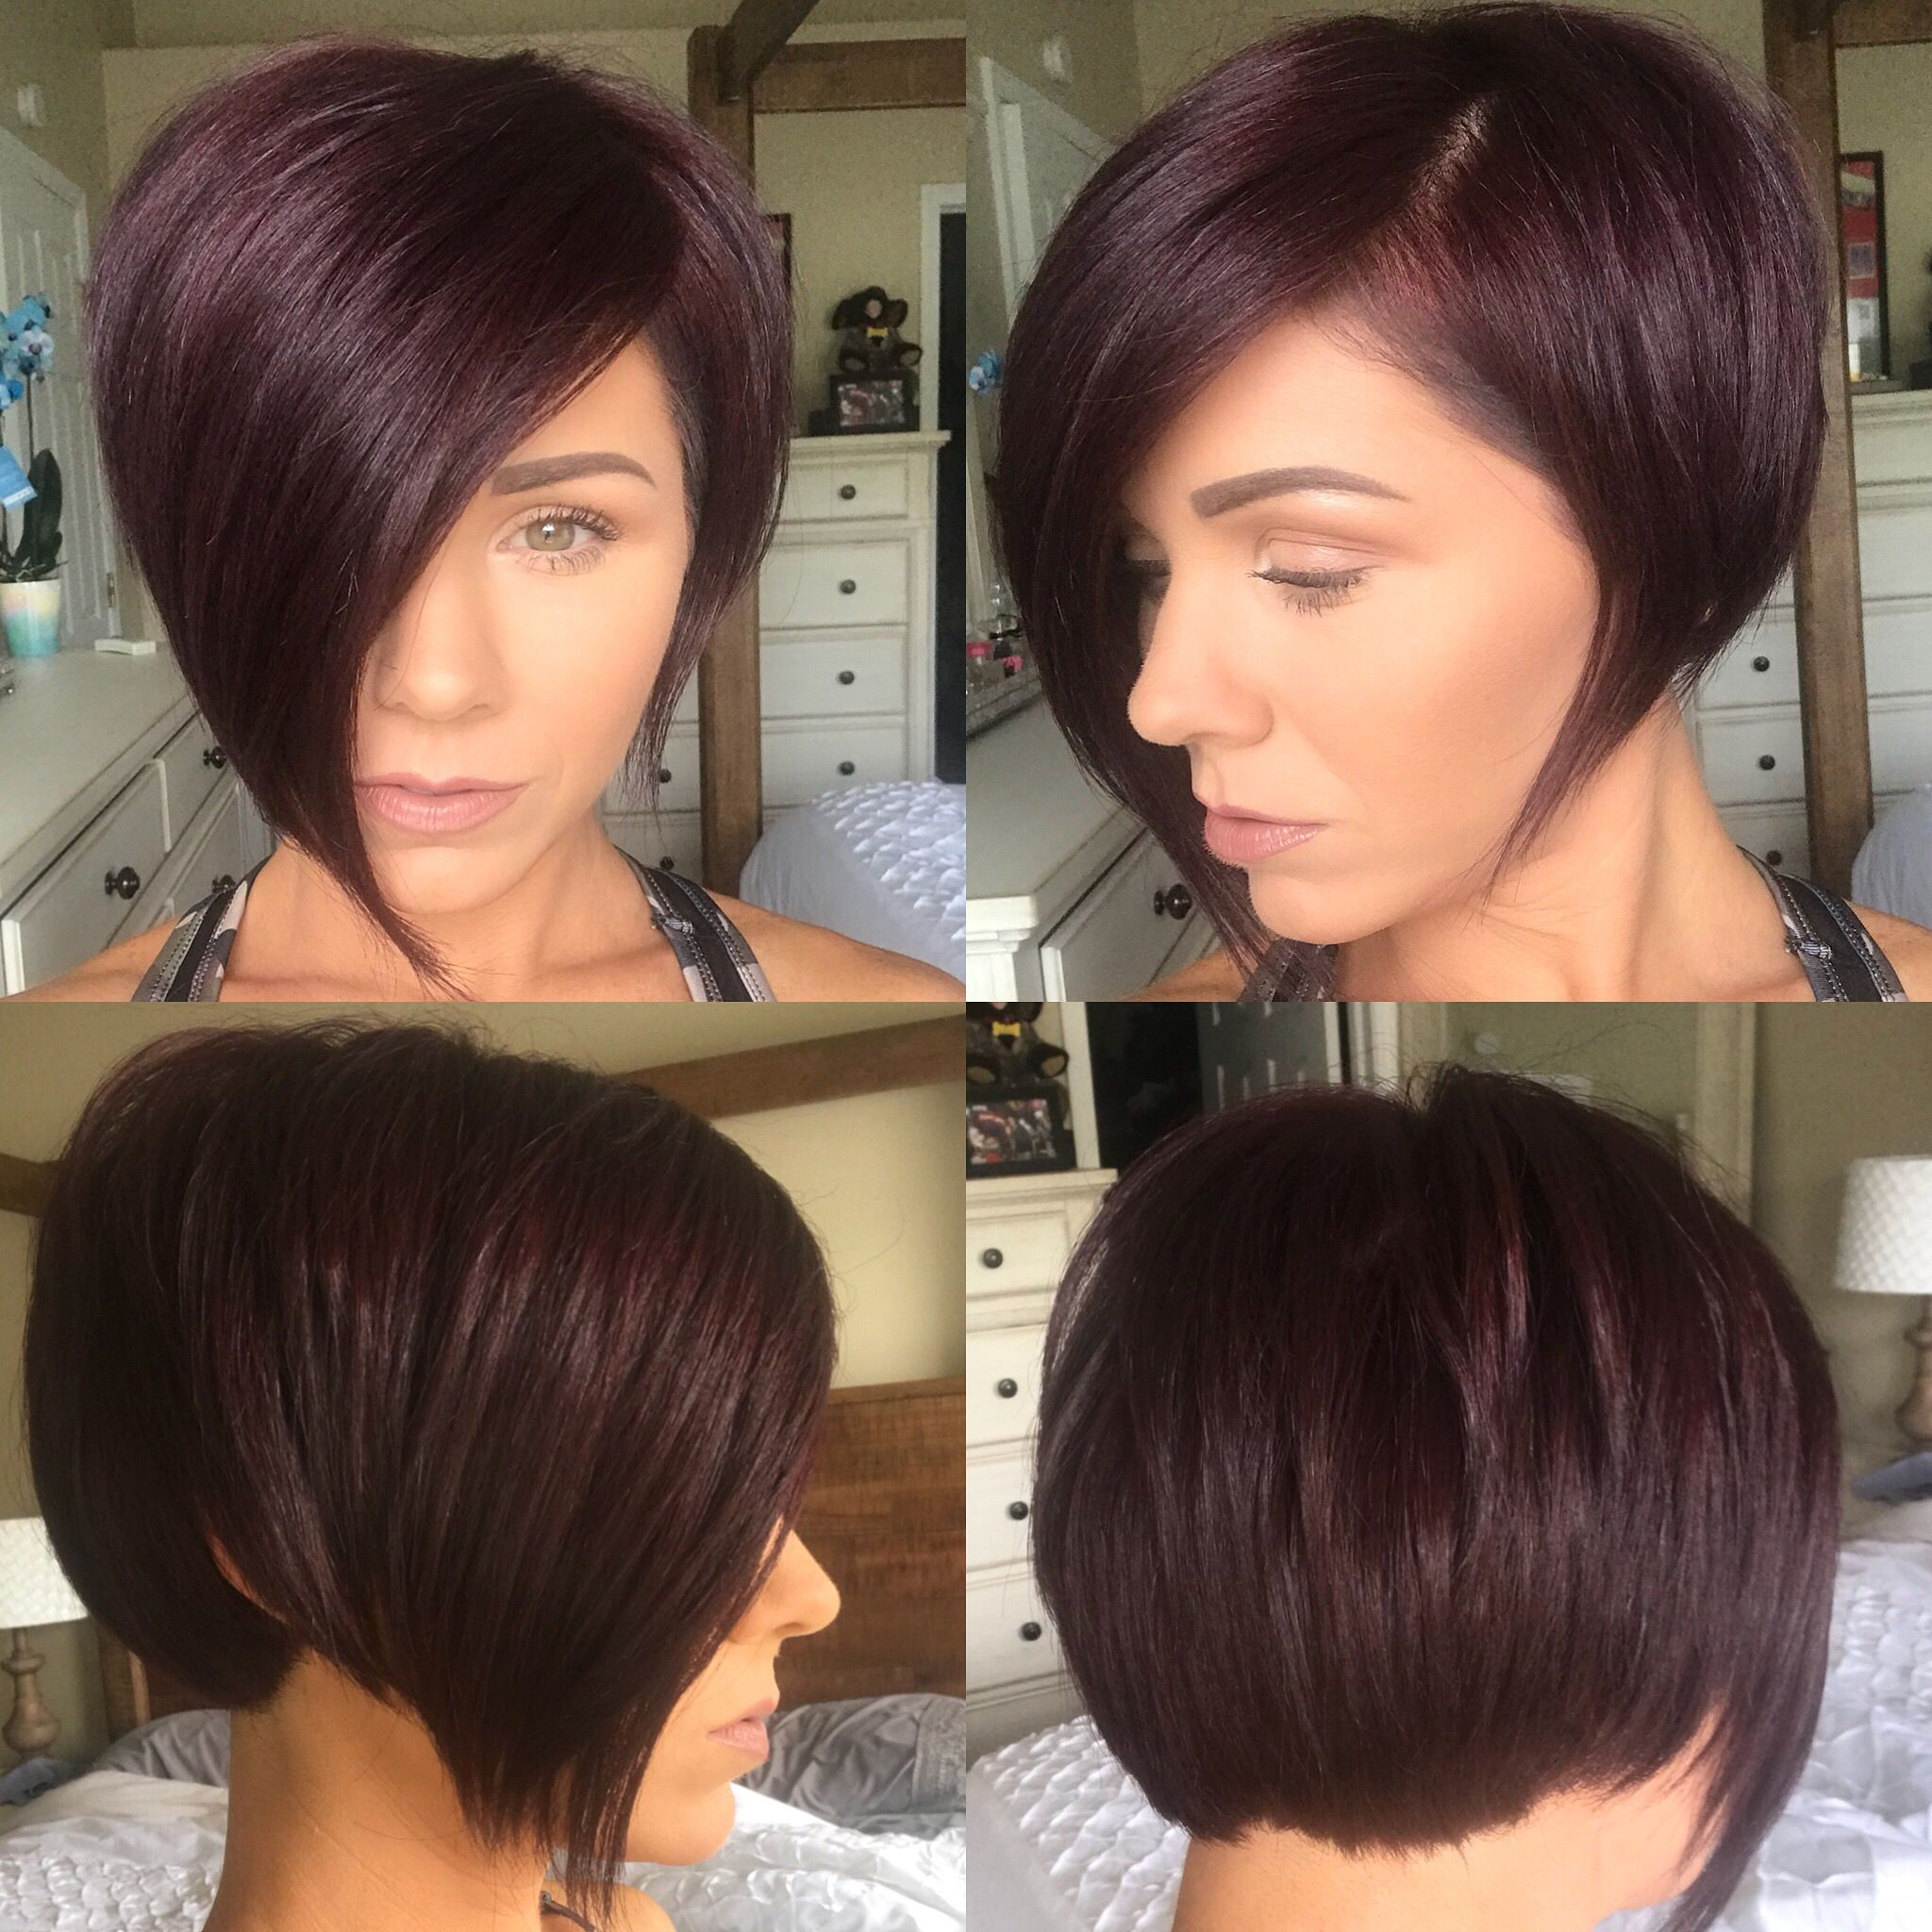 Shag haircut for men shorthair pixie bob violethair redviolethair nothingbutpixies